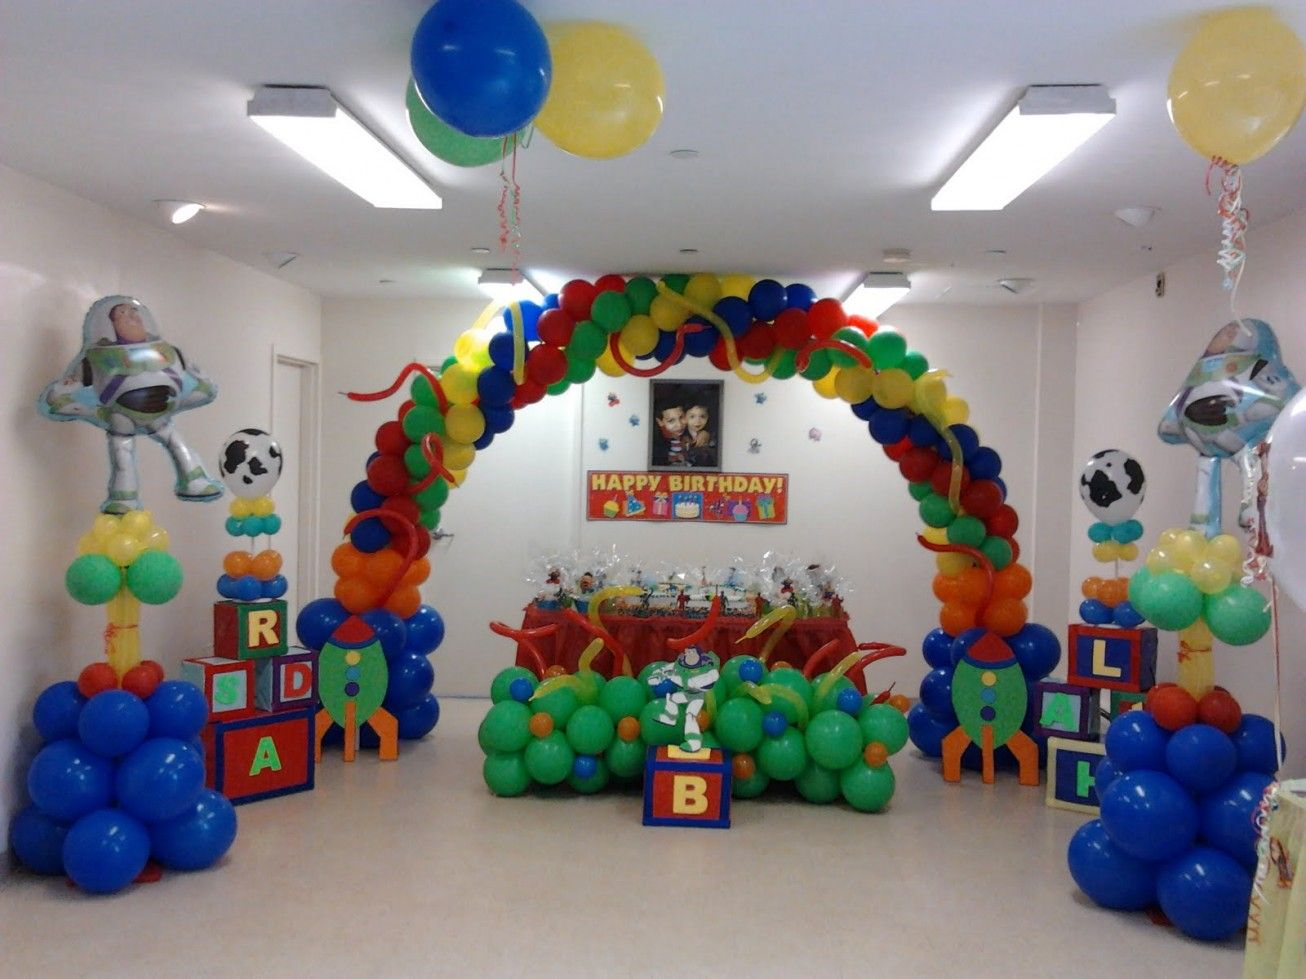 Party balloons decorations - Balloons Decoration Buscar Con Google